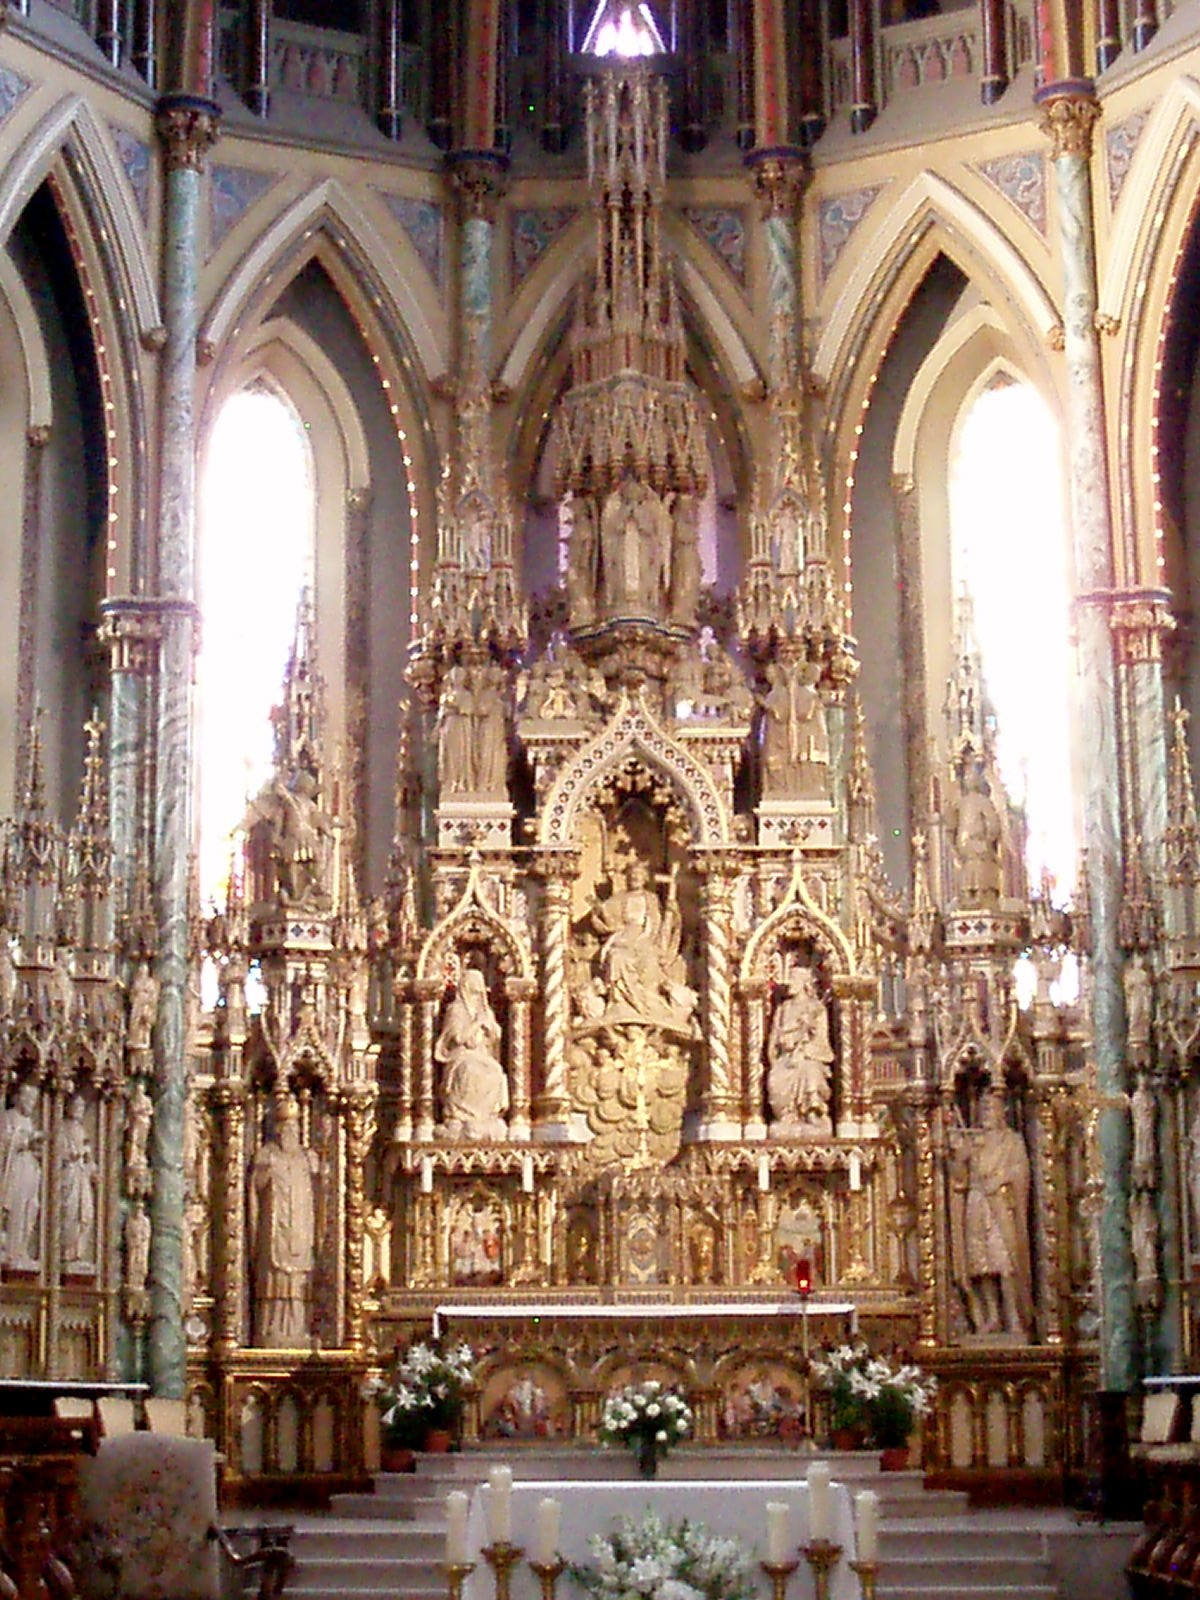 Catholic Art and Architecture: The altars of Notre Dame, Ottawa